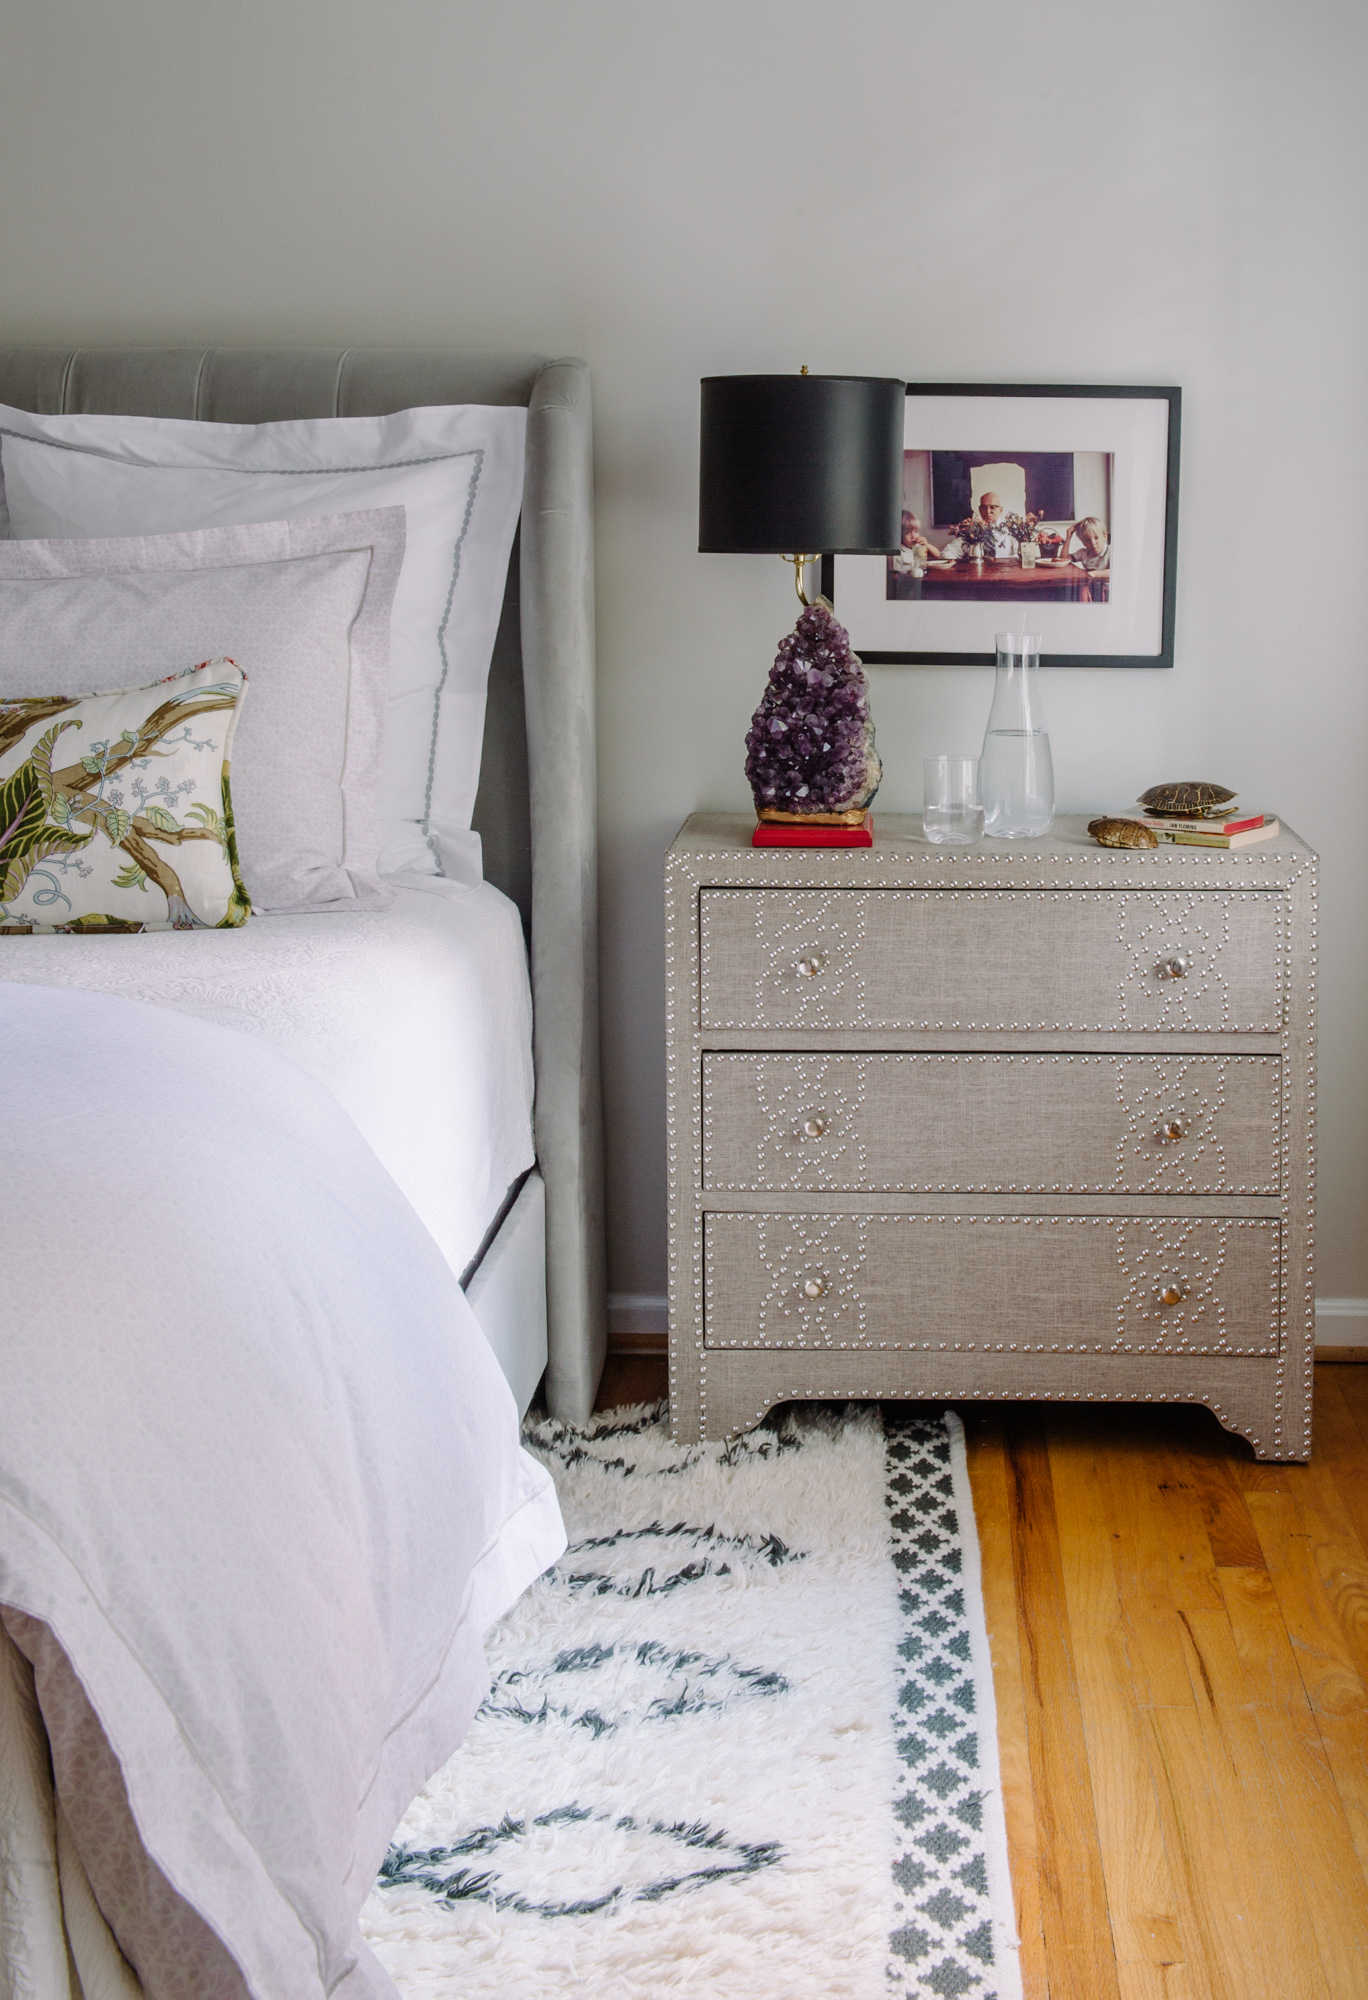 Bedside table by Alison Giese Interiors